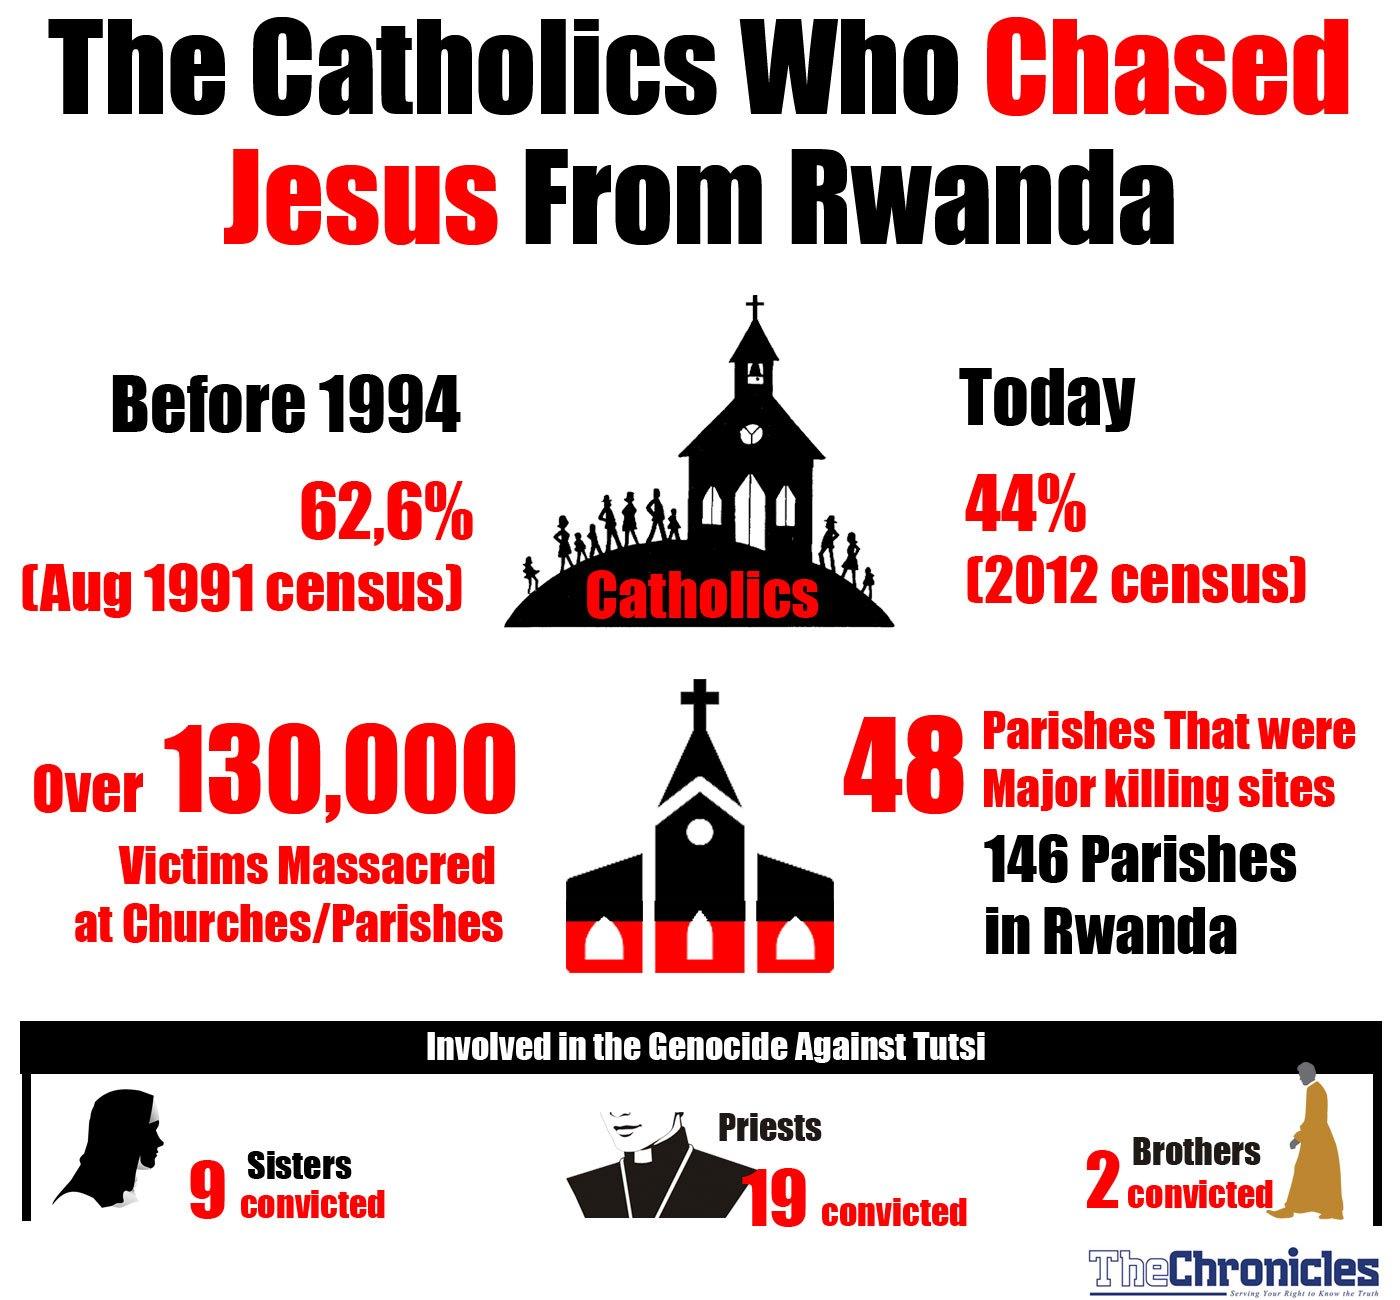 The Catholics Who Chased Jesus From Rwanda – THE CHRONICLES